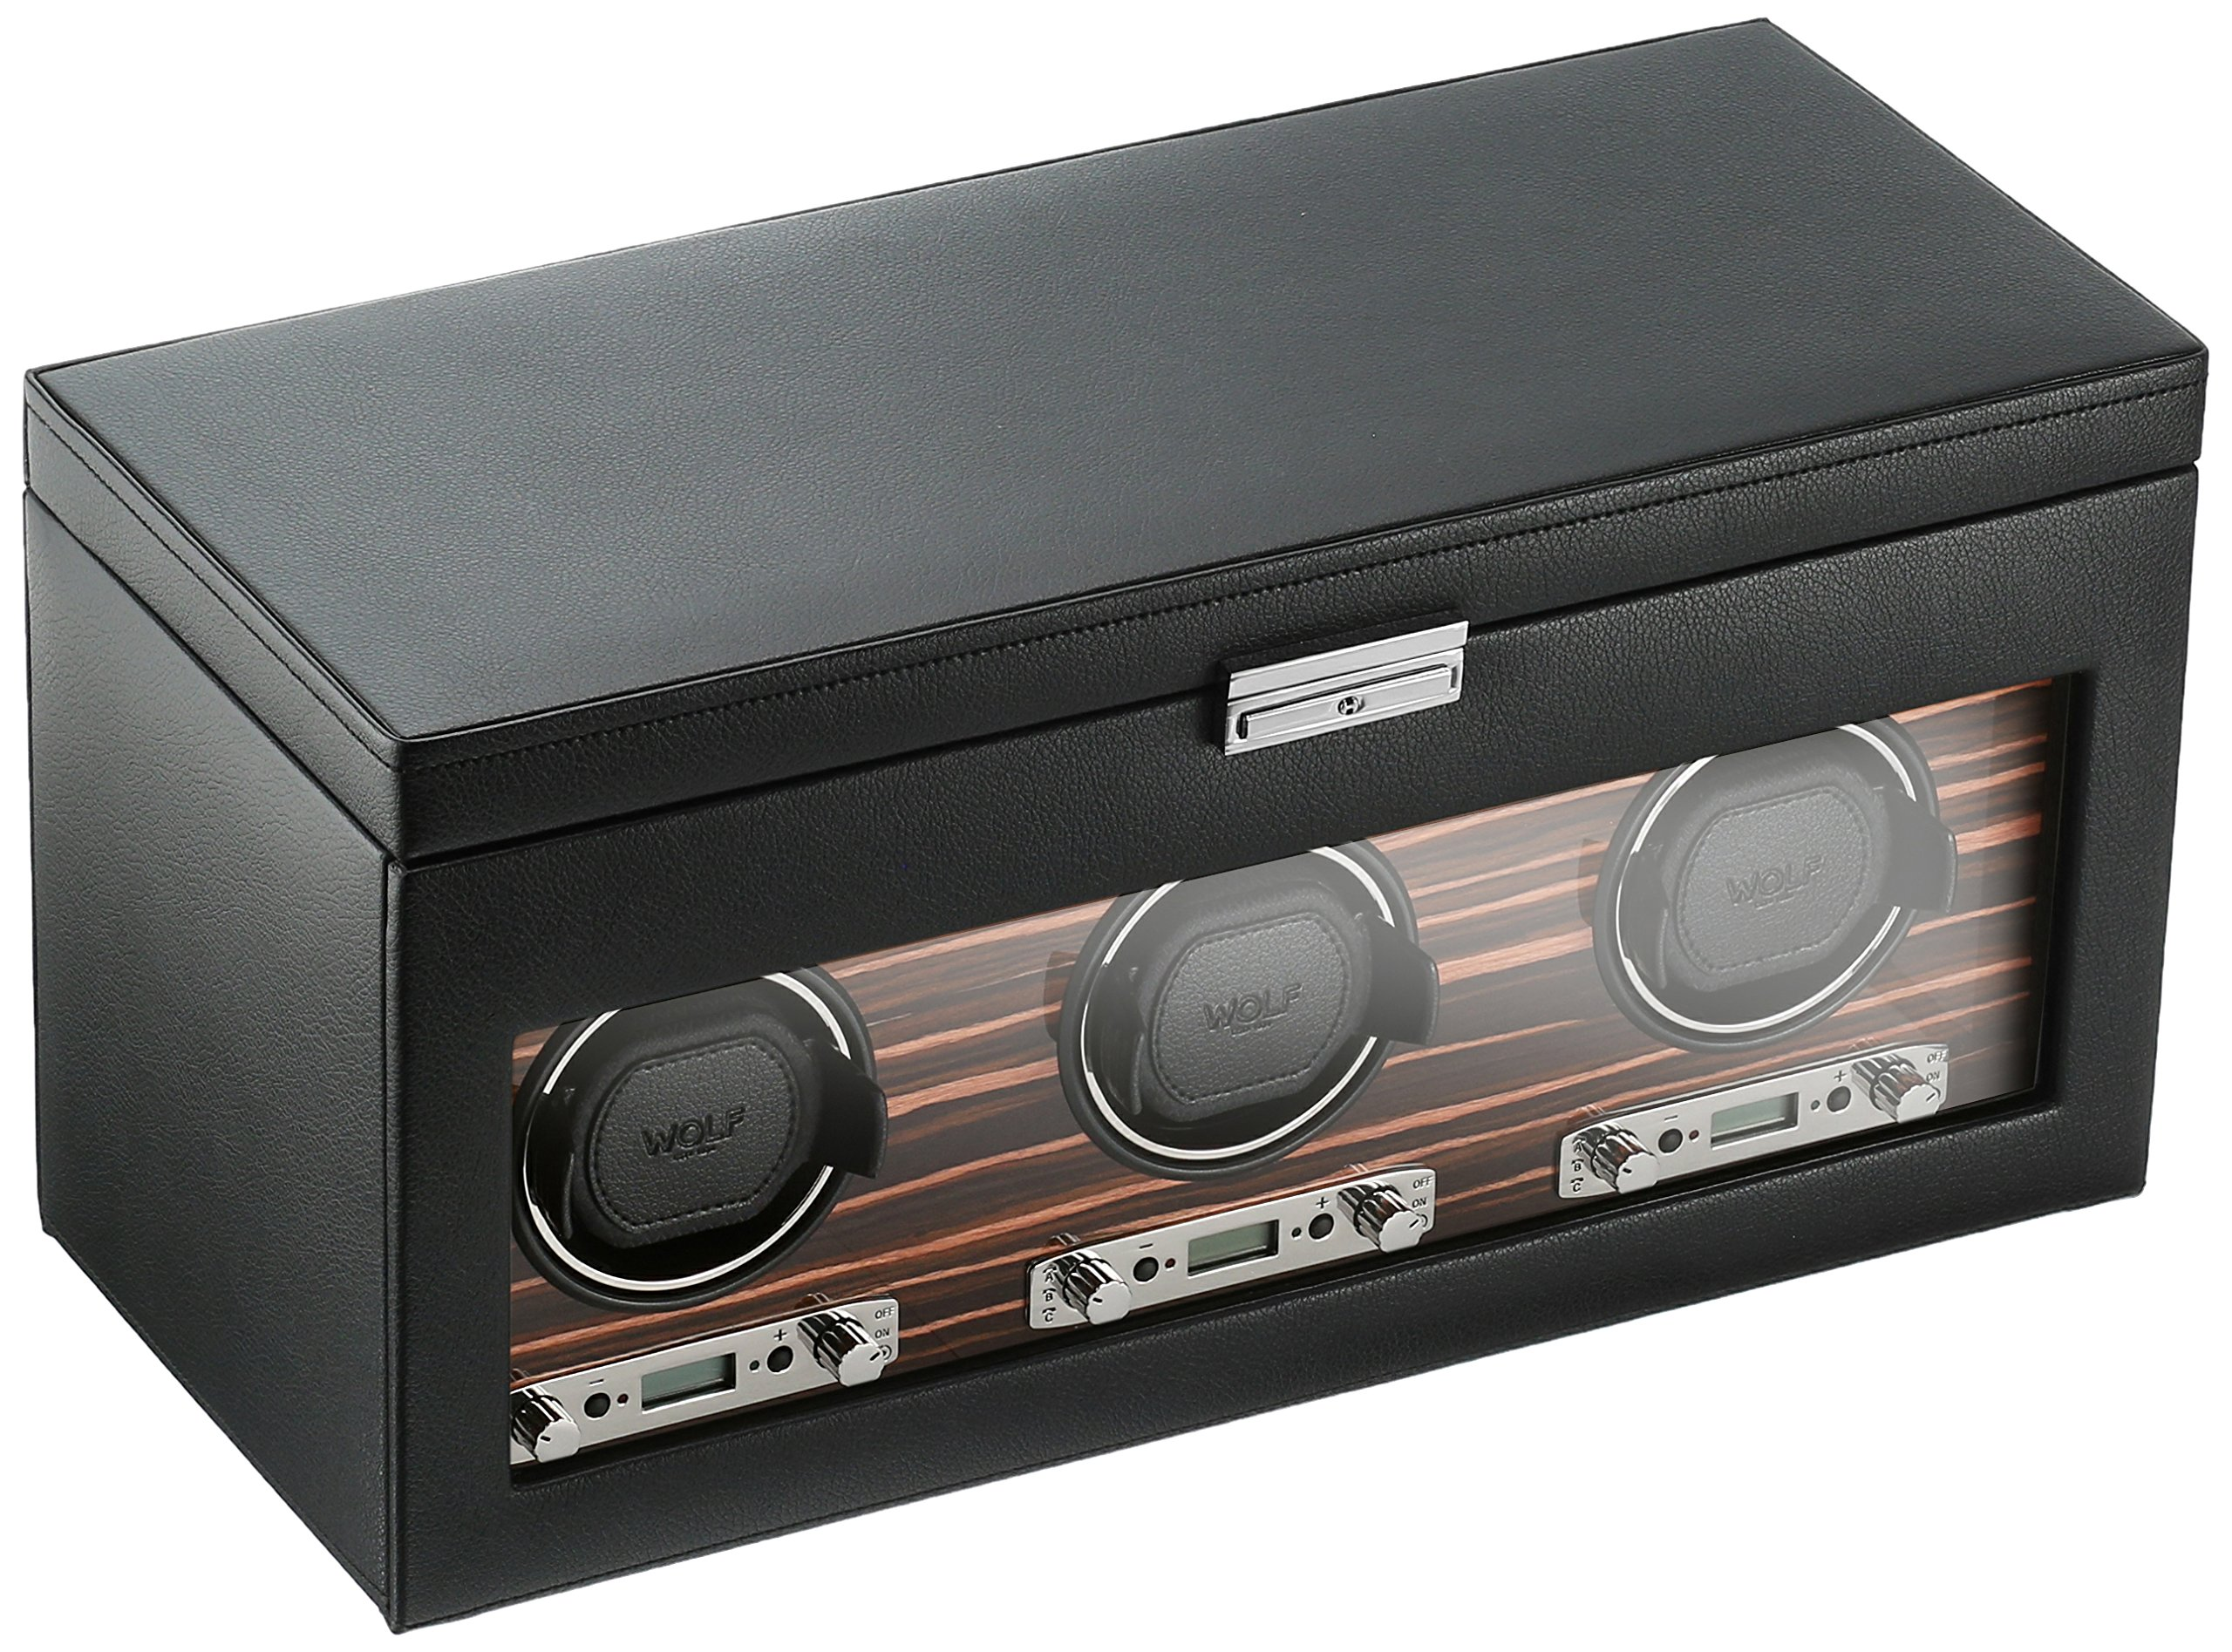 WOLF 457356 Roadster Triple Watch Winder with Cover and Storage, Black by WOLF (Image #1)